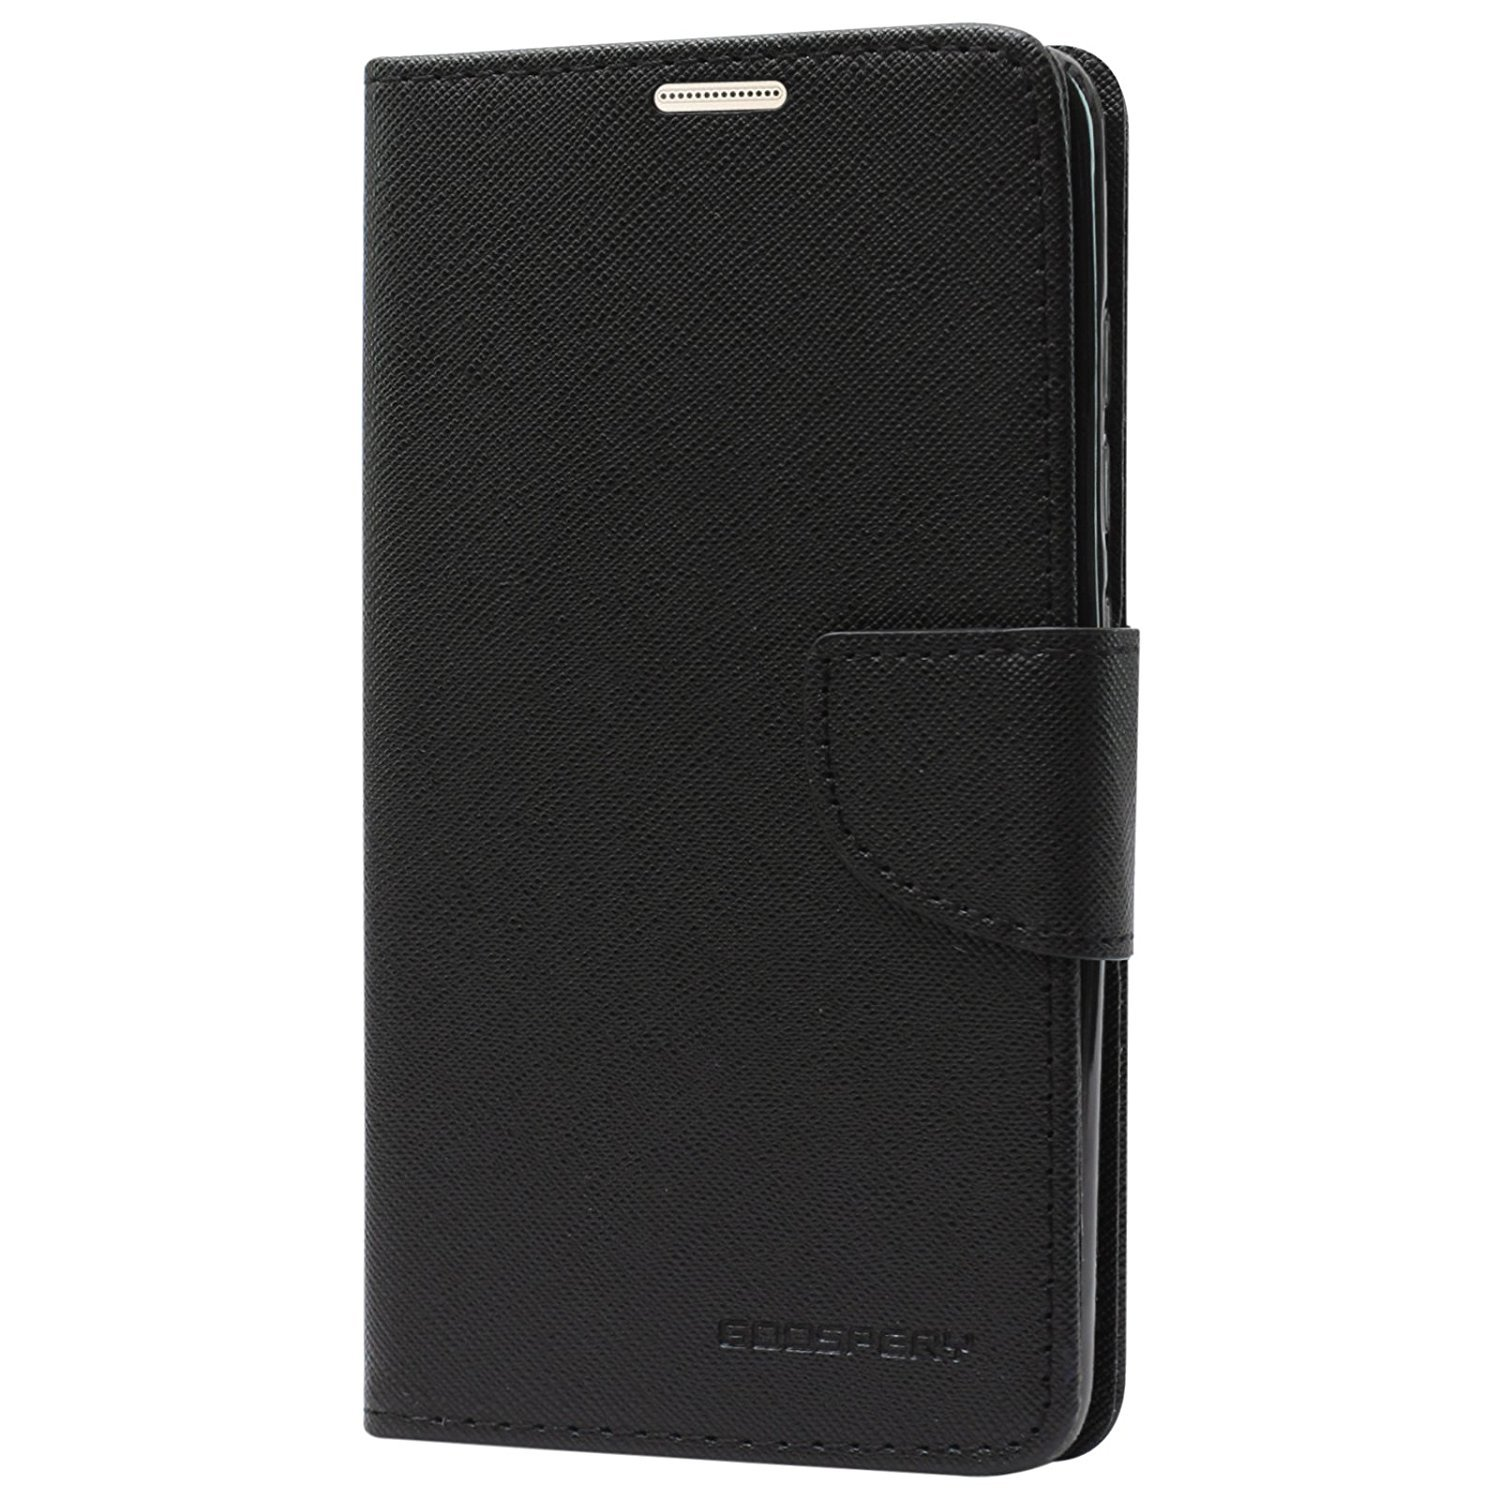 huge discount 5a62b 6b2af Online India VIVO Y1610 FLIP Cover Imported Mercury: Amazon.in ...